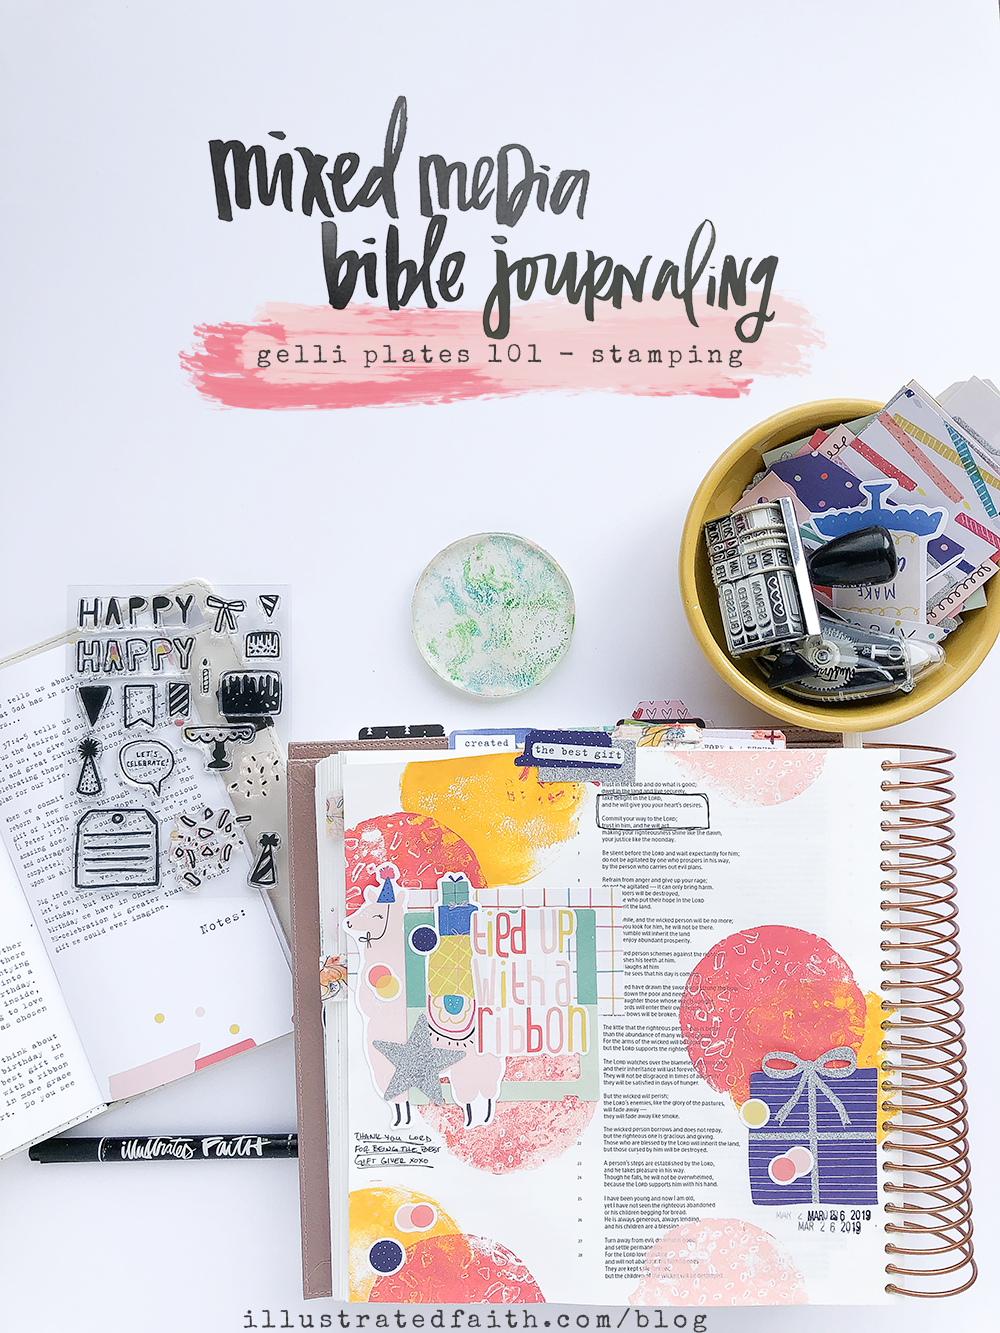 Mixed Media Bible Journaling - Gelli Plate Stamping Tutorial by Heather Greenwood | Tied Up With a Ribbon - Psalm 37:4-5